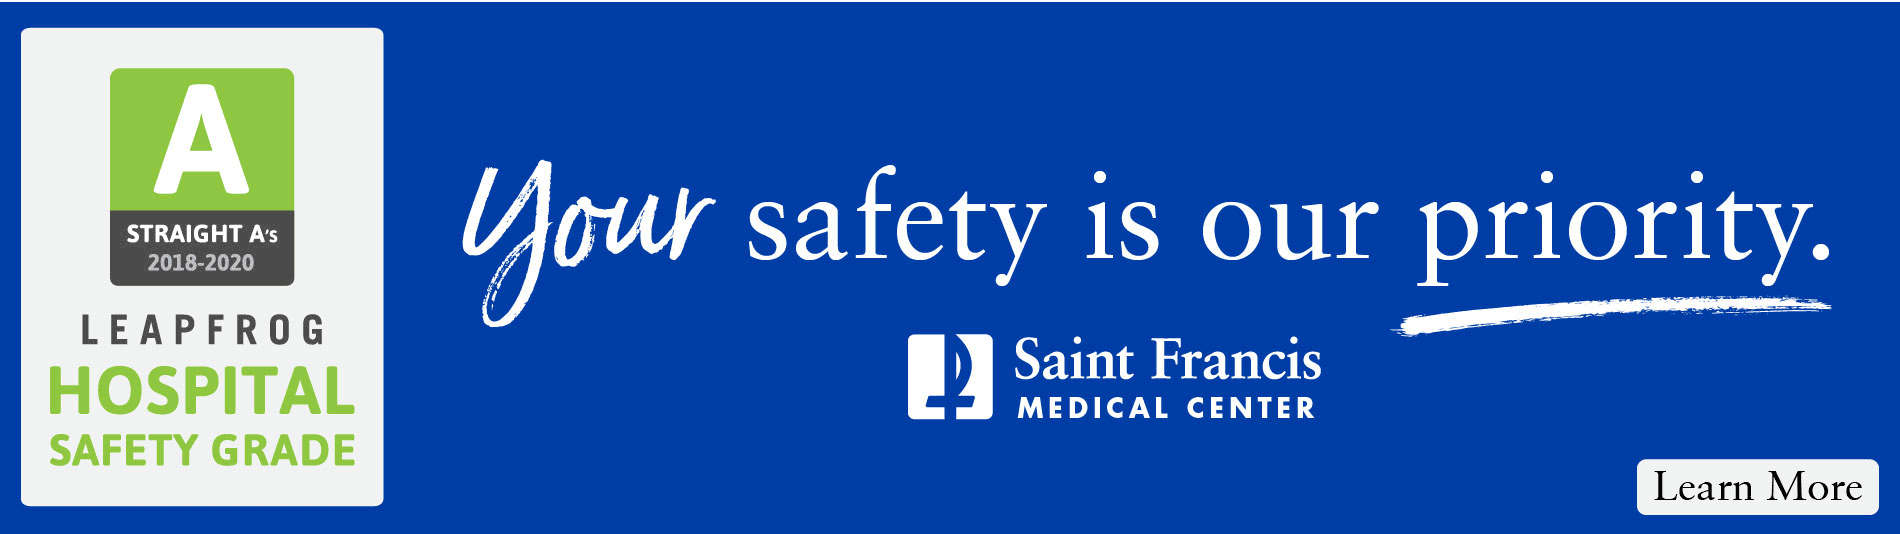 The Leapfrog Group has Awarded Saint Francis Medical Center Straight A's for Their Hospital Safety Grade Five Times in a Row, 2018 - 2020